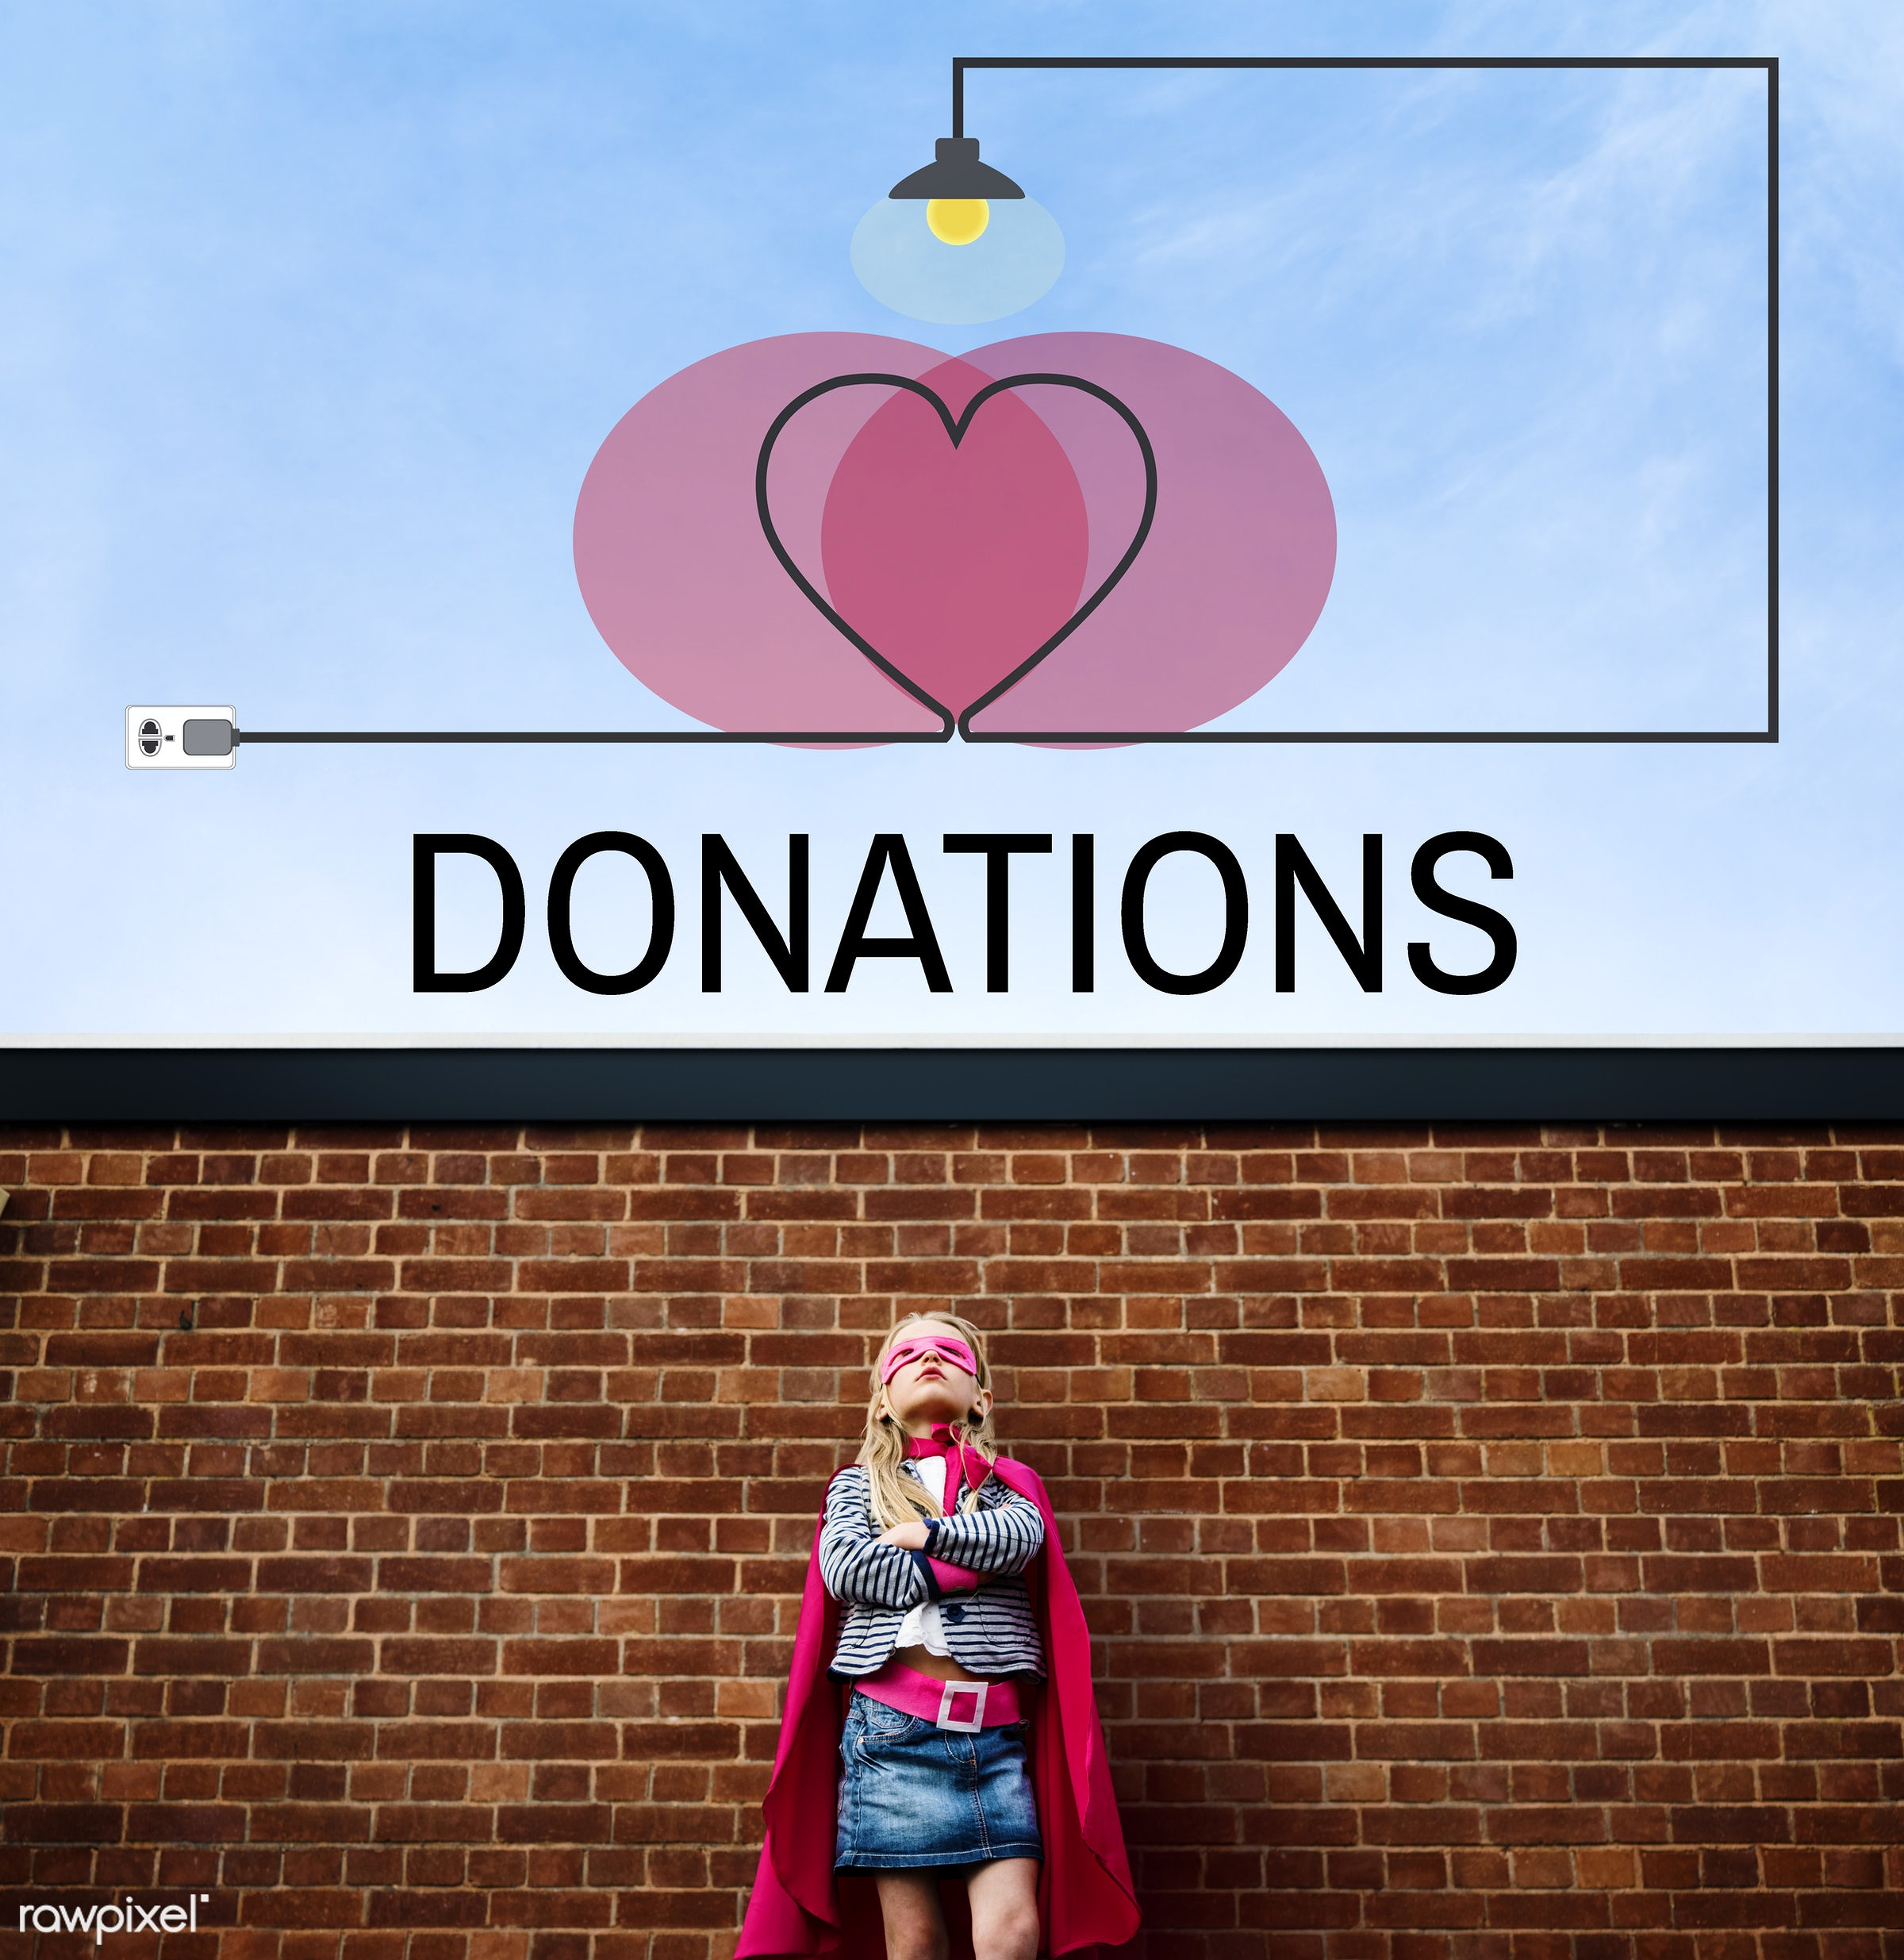 active, aid, assistance, care, charitable, charity, child, childhood, community, contribute, costume, donate, donations,...